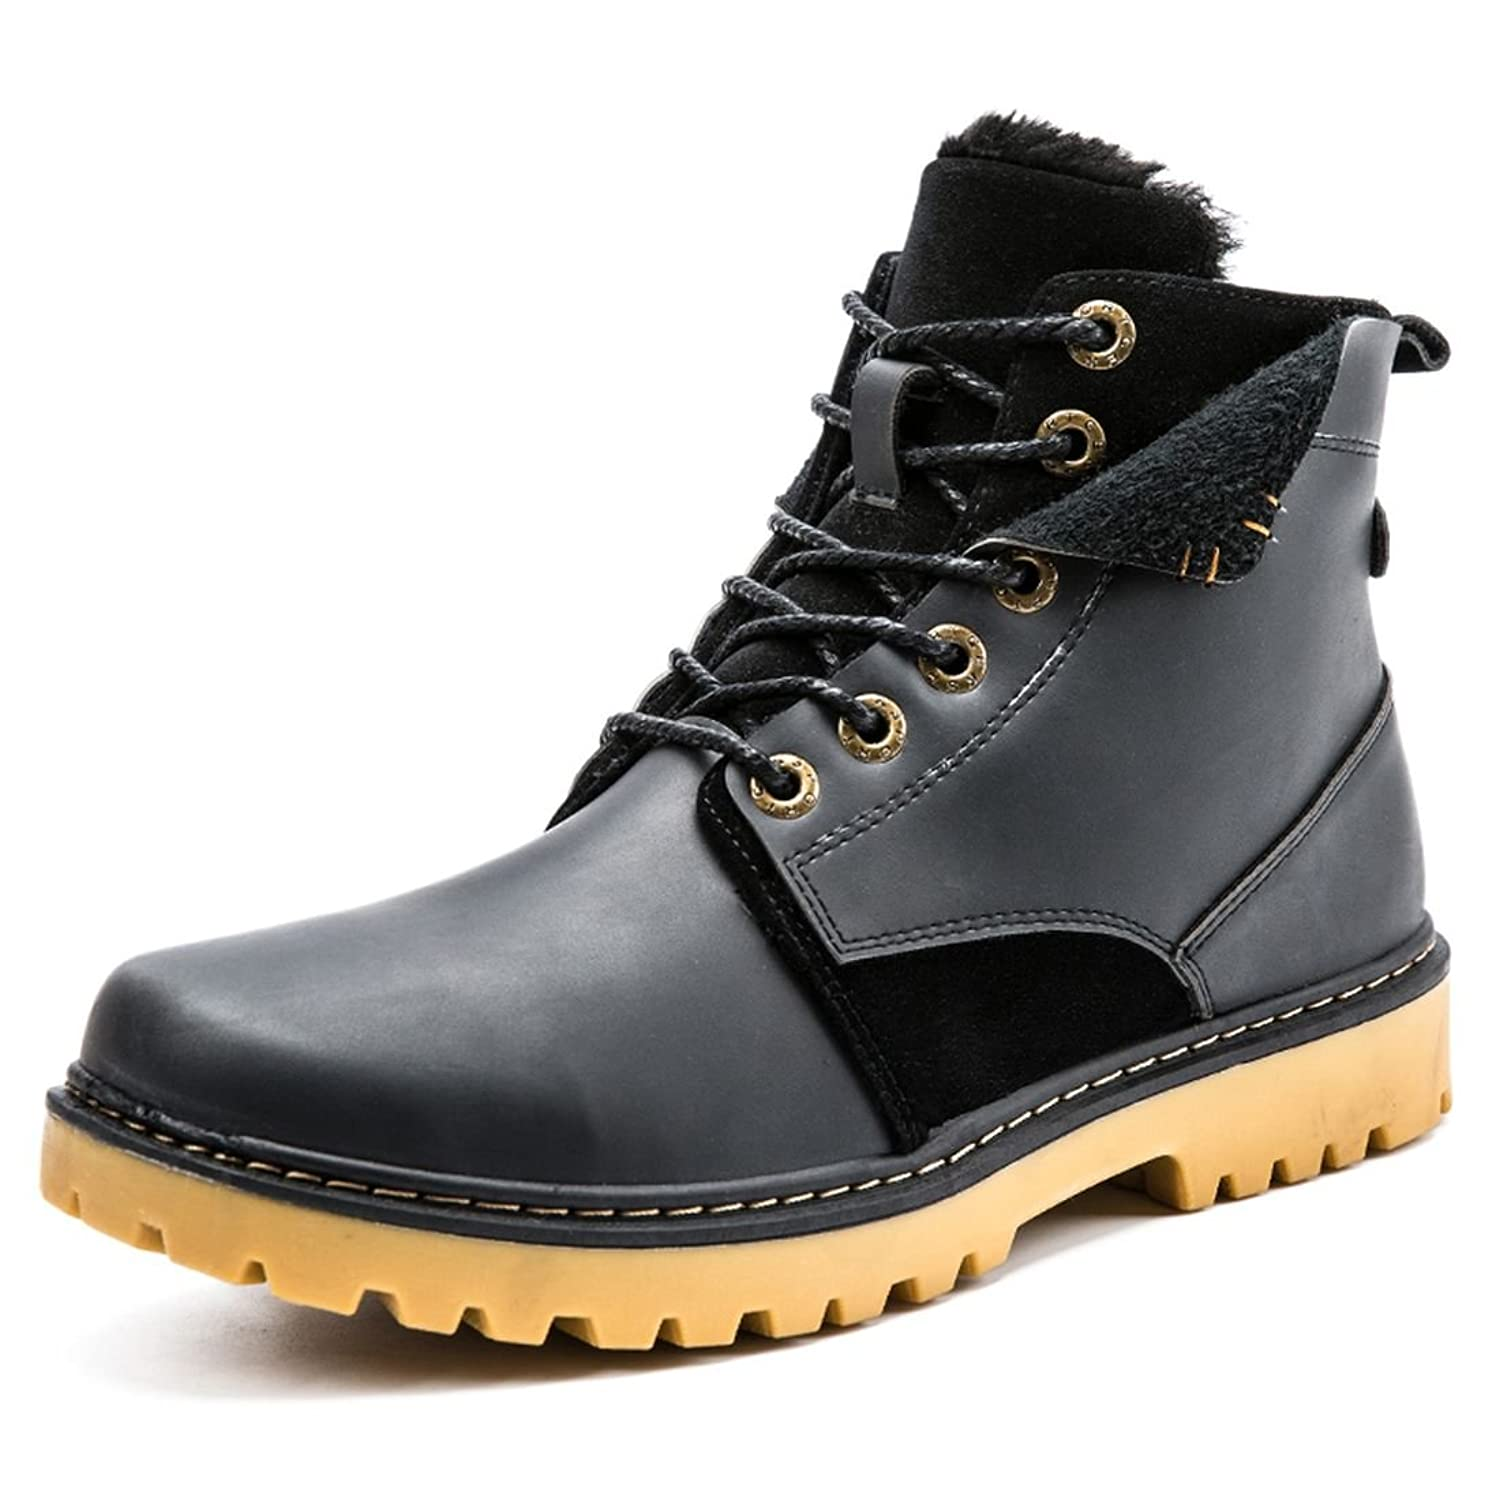 Zixi Pydi(TM) Mens Winter High Top Leather Martin Boots Fur Lined Cotton Shoes With Lace-up